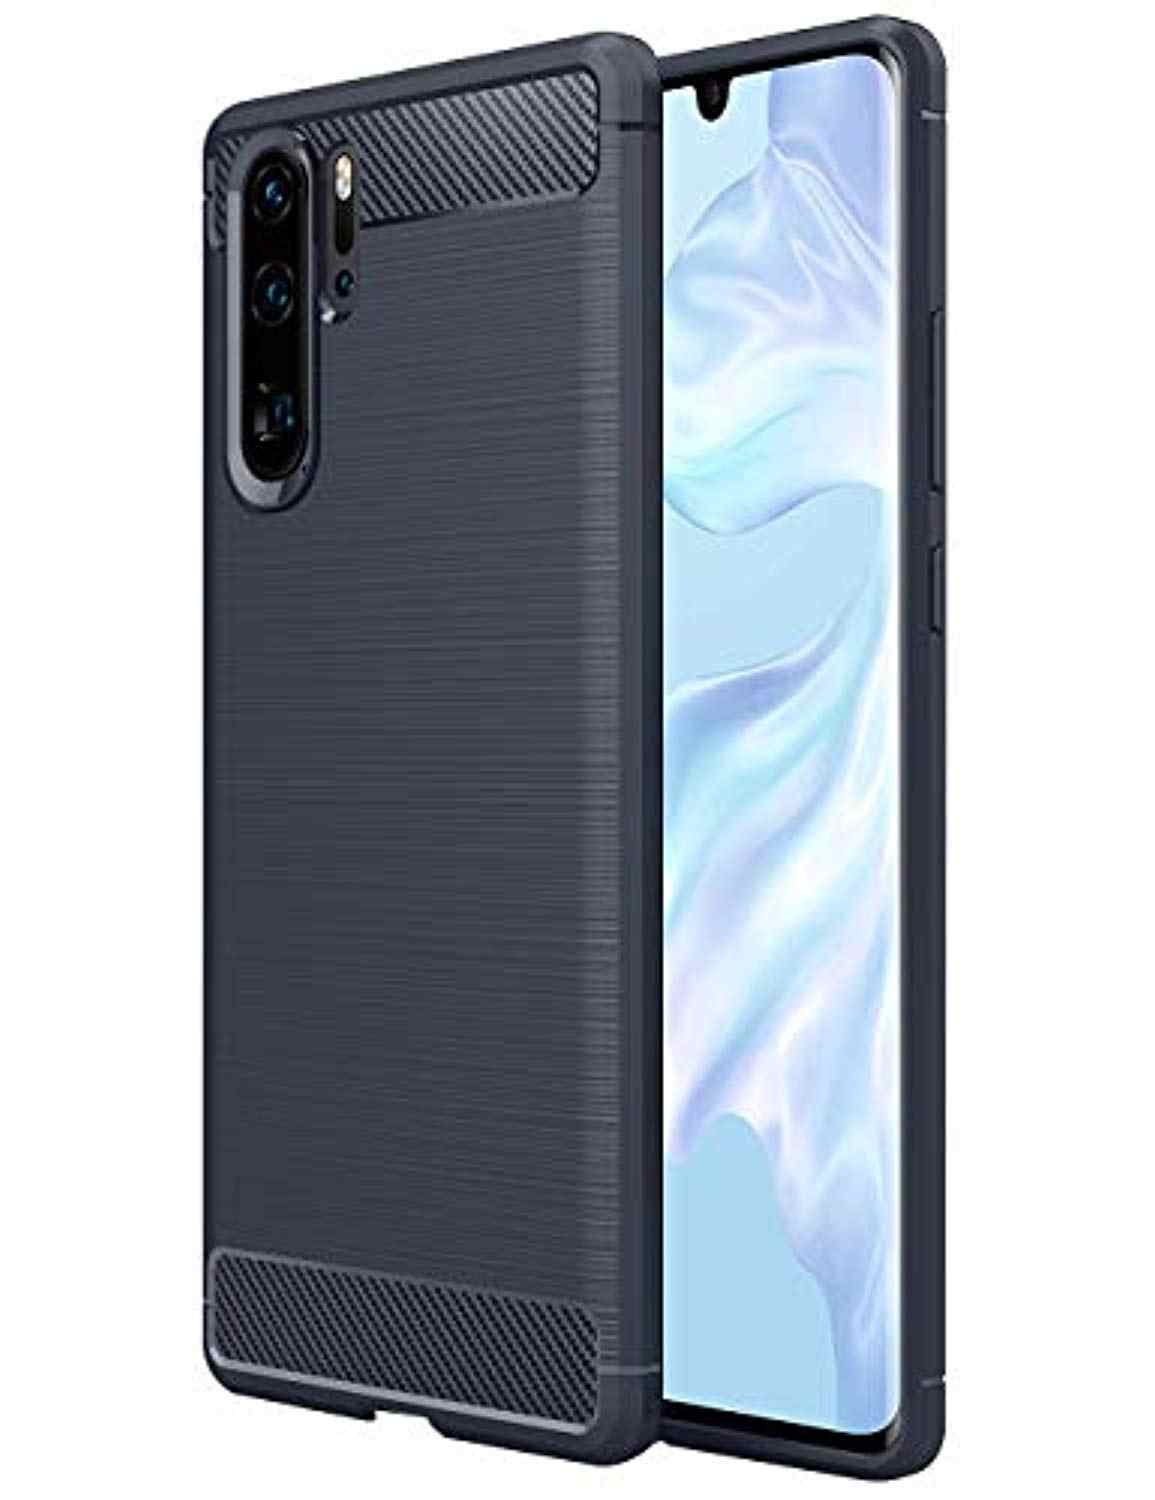 Carbon Fiber Armor TPU Silicone Case for Huawei P30 Pro P20 Lite P10 Nova 5i 5 4 3 2 Honor 9X 8X 7X View 20 10 Cover Phone Cases